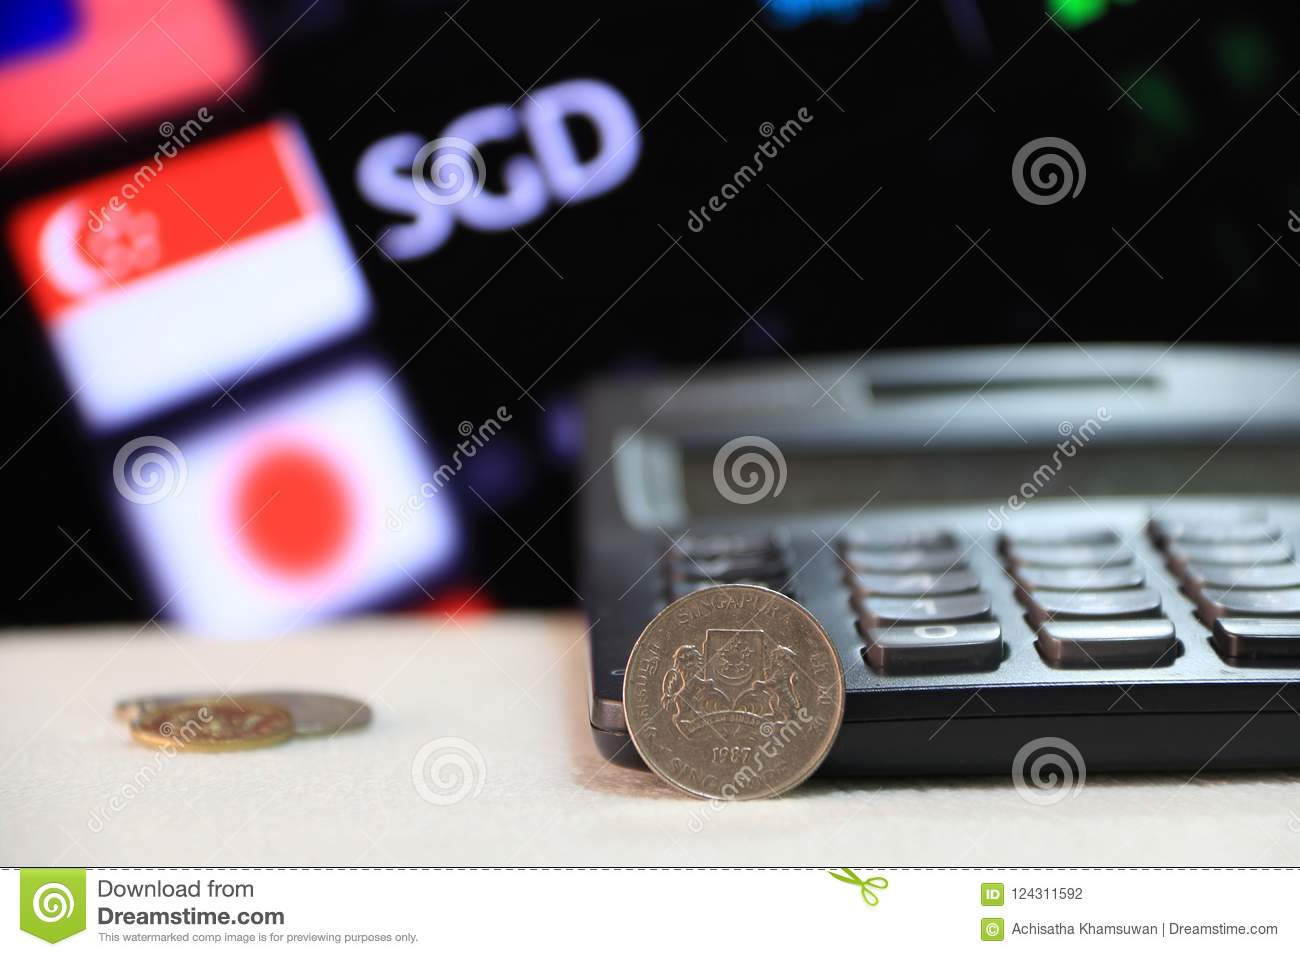 Twenty Cents Singapore Coin On Obverse Sgd With Black Calculator And Digital Board Of Currency Exchange